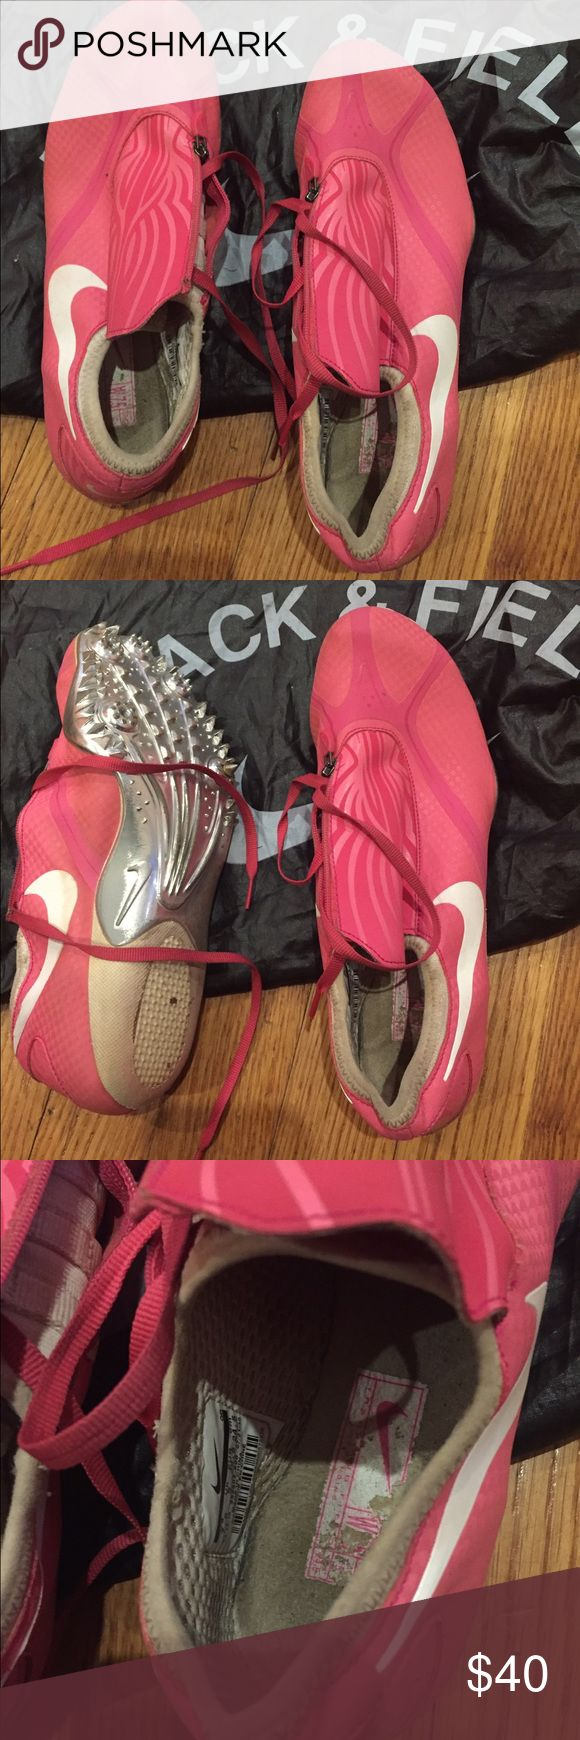 Nike Spikes Pink Nike Spikes. Used for long jump. You will need new spikes. Bag included. Nike Shoes Athletic Shoes